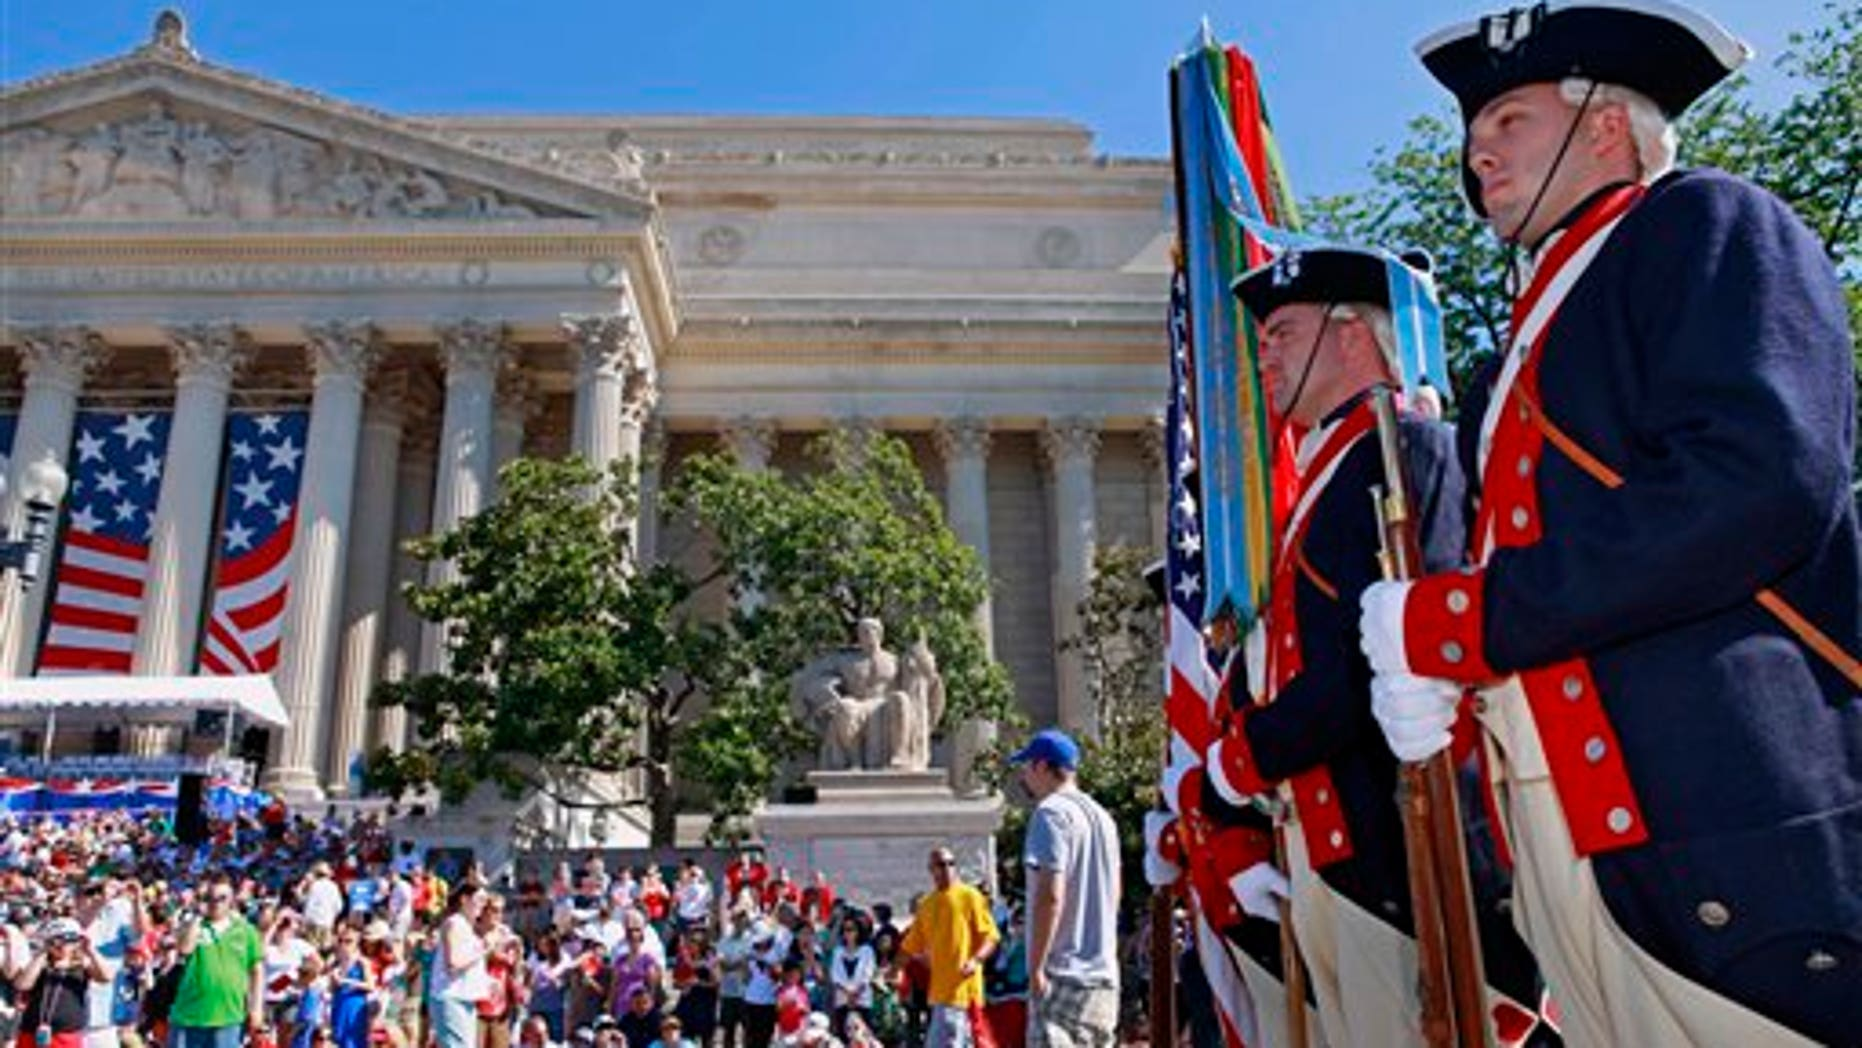 Soldiers with the 3rd U.S. Infantry Regiment Old Guard Continental Color Guard line up near the National Archives building, left, in Washington before the start of the Fourth of July, Independence Day, festivities Sunday, July 4, 2010. (AP Photo/Jacquelyn Martin)